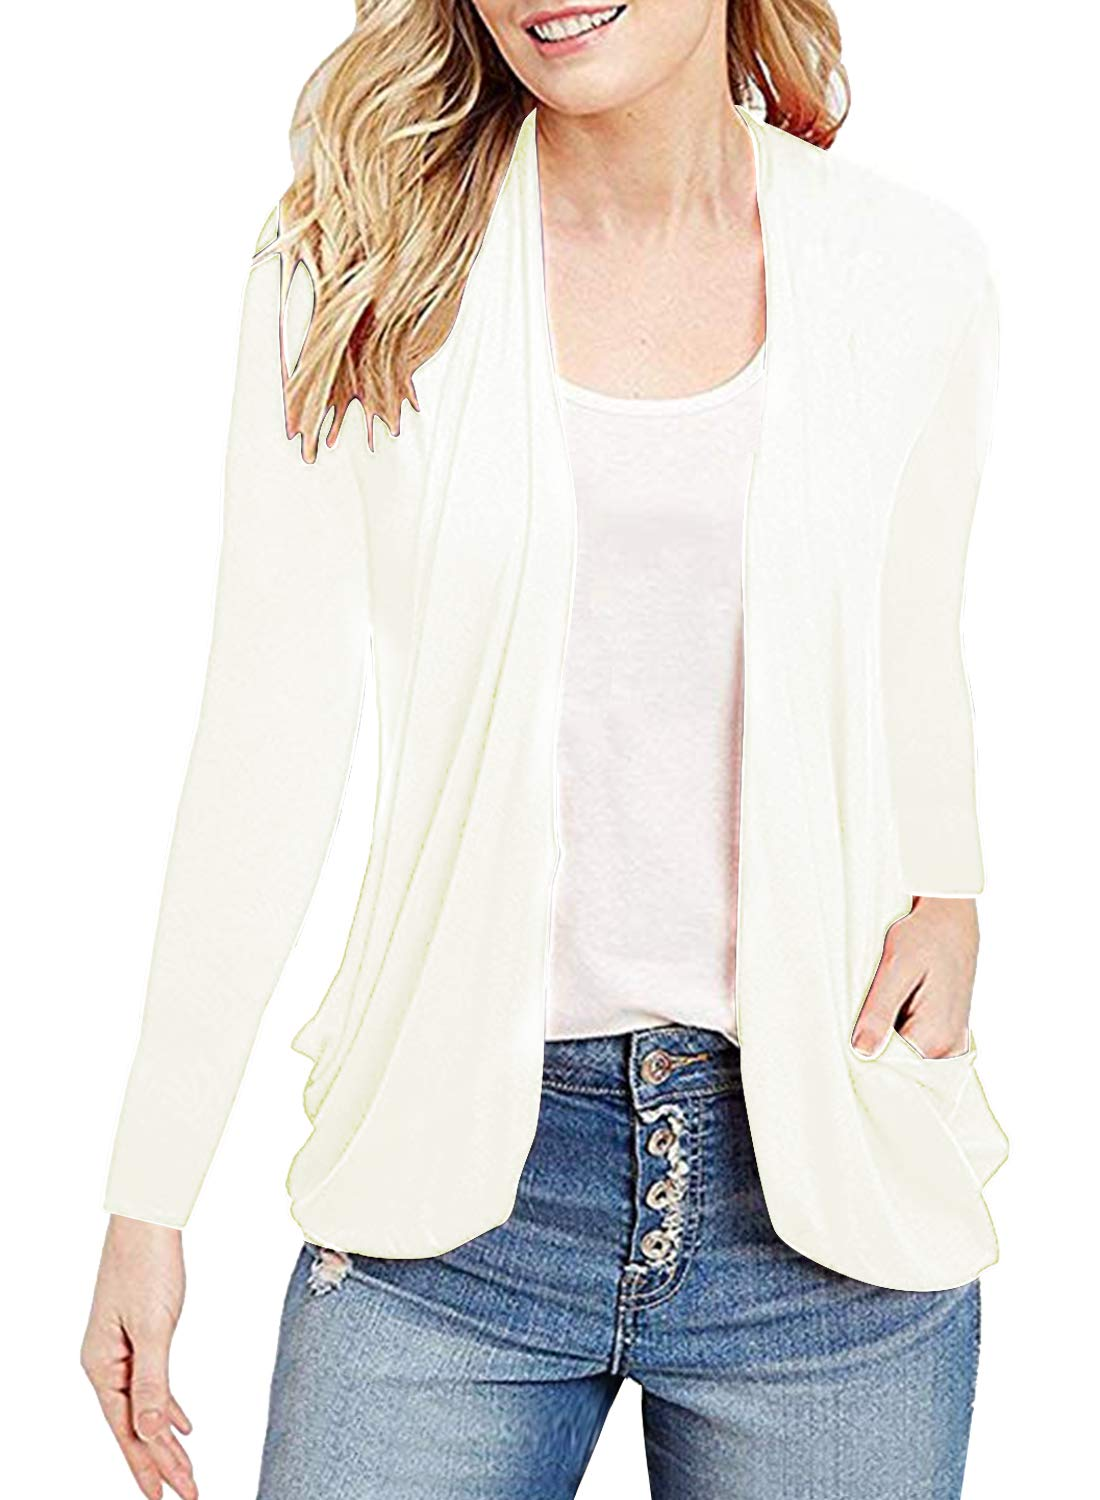 MIHOLL Women's Casual Cardigans Long Sleeve Open Front Top Blouse (Small, White)